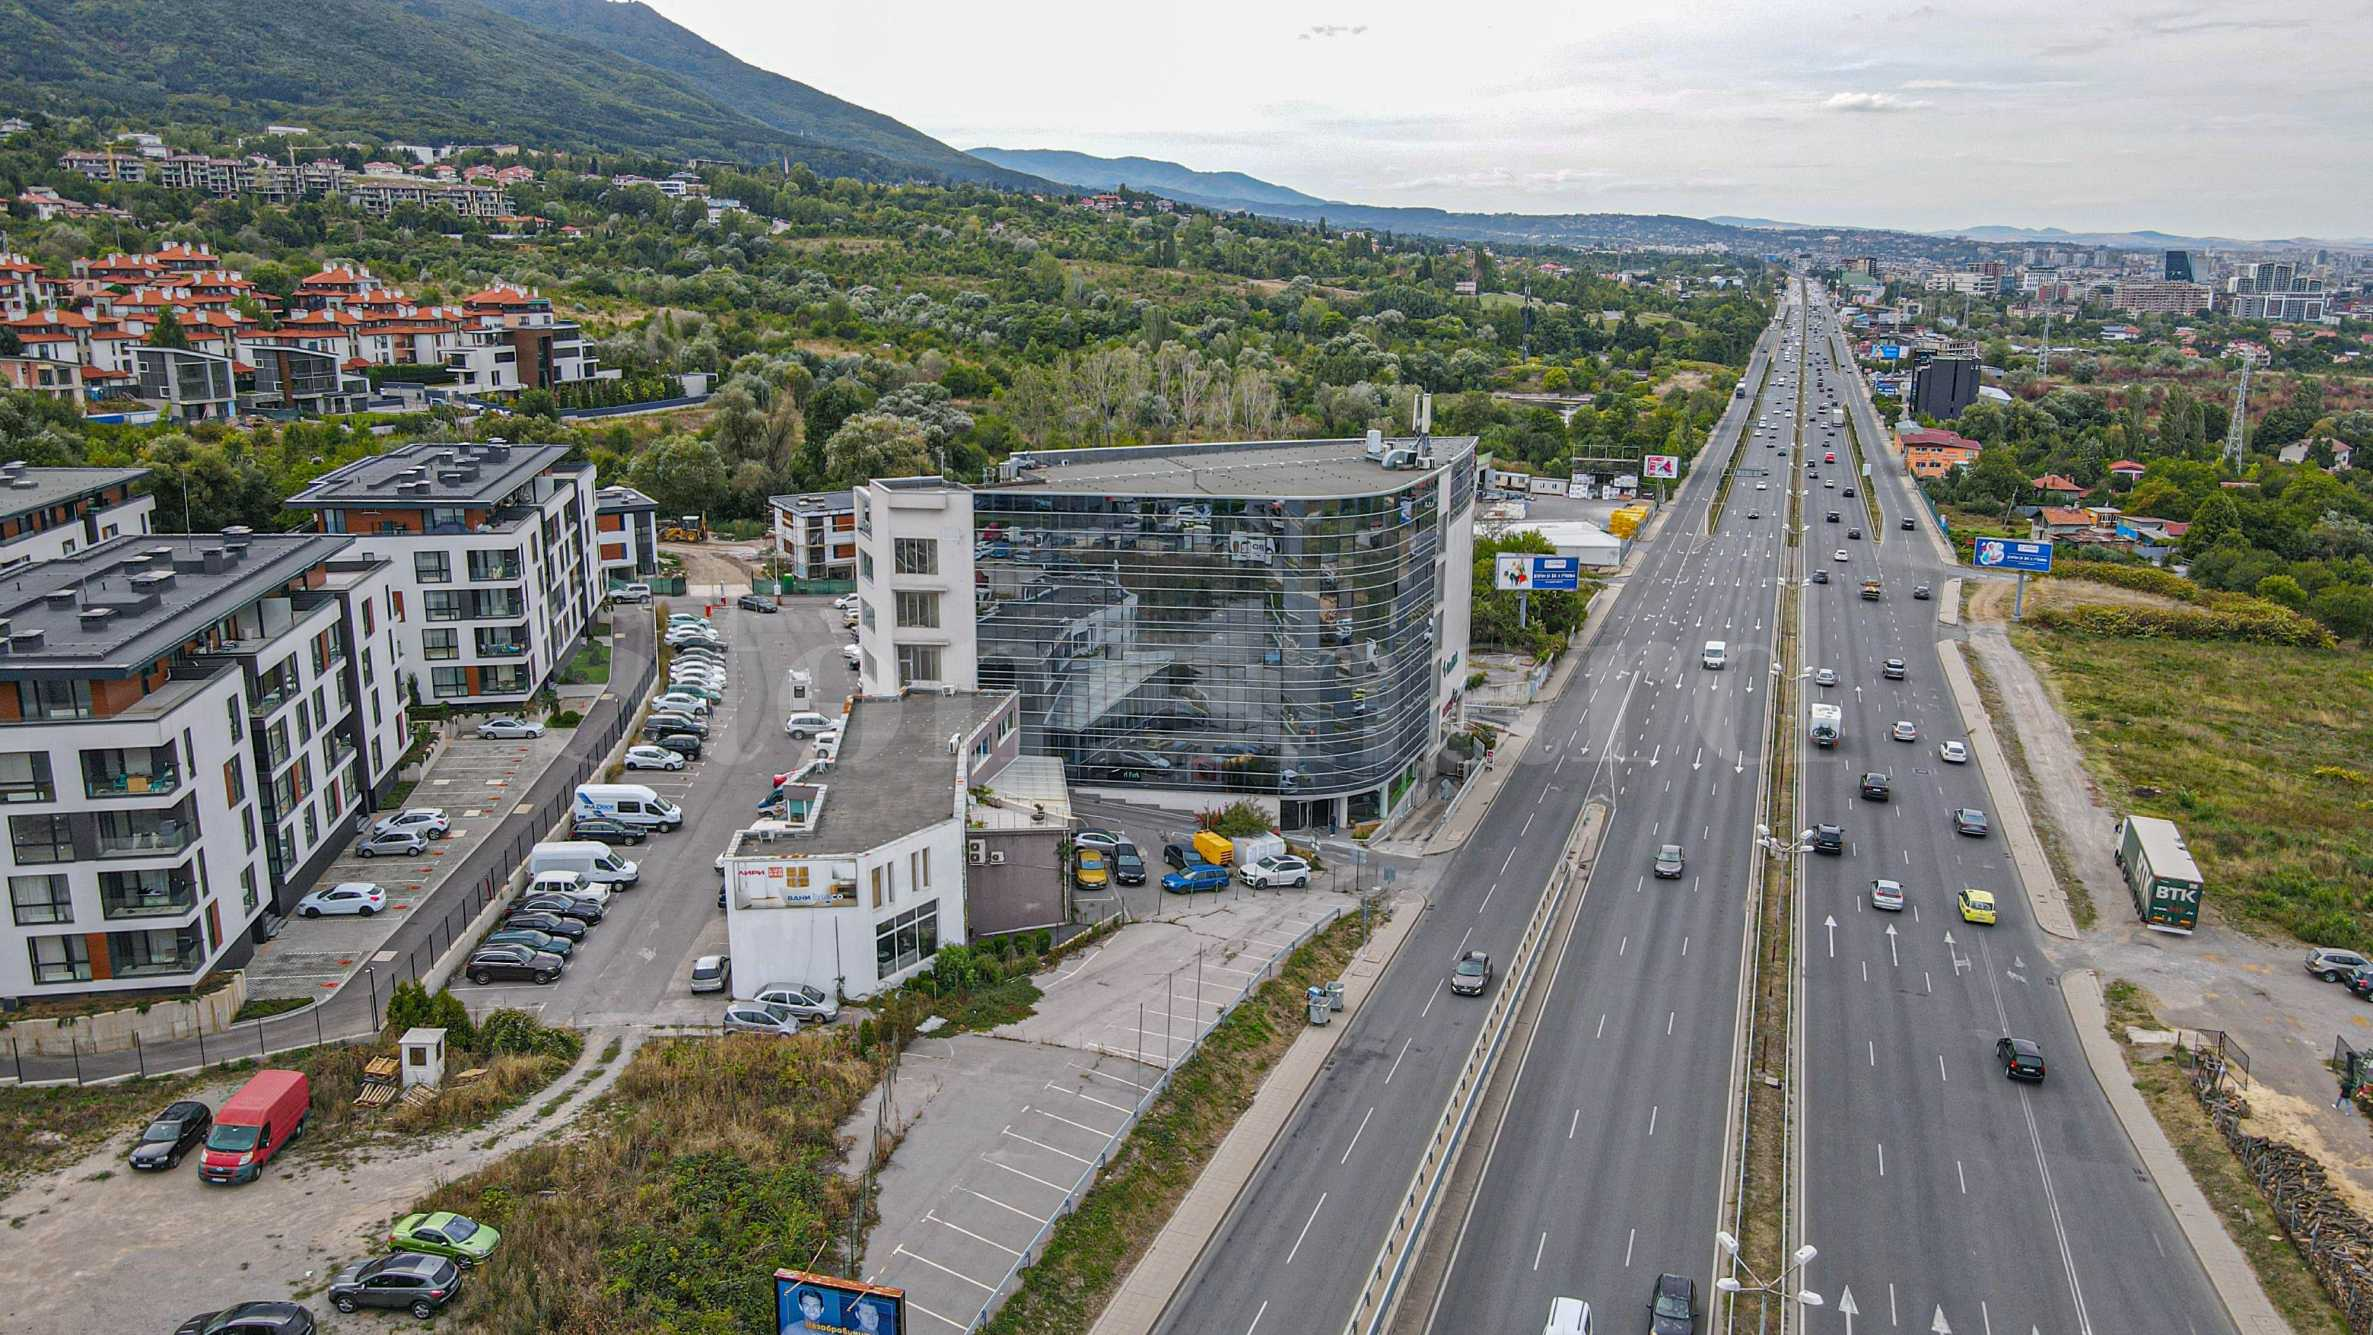 Commercial property in Sofia2 - Stonehard